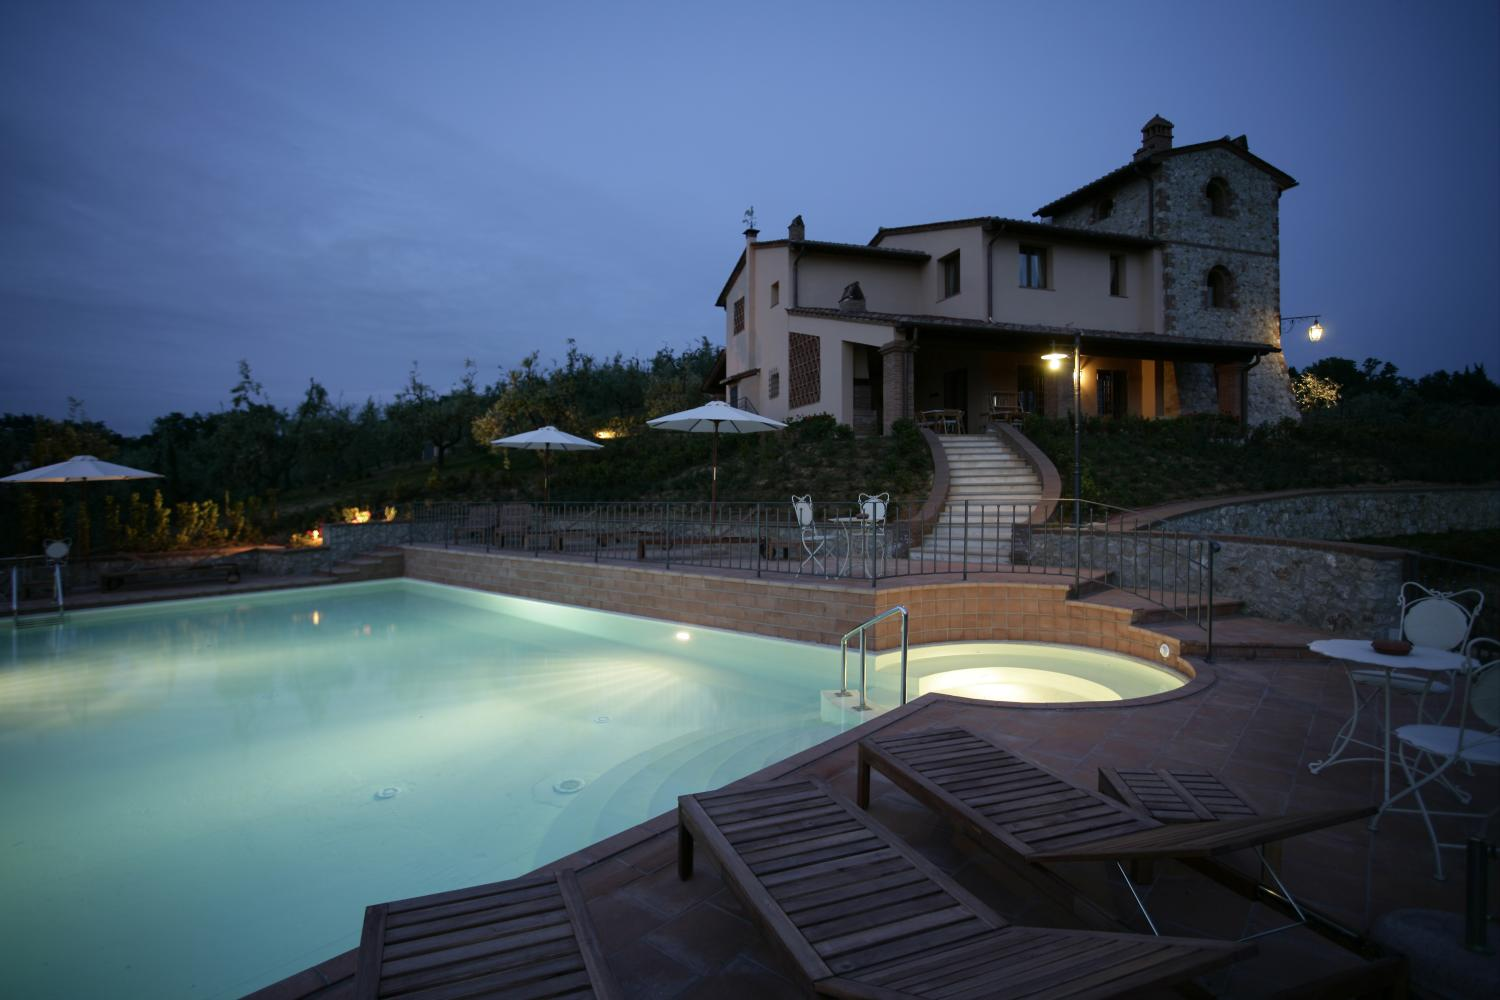 Rental Chianti villa traditional